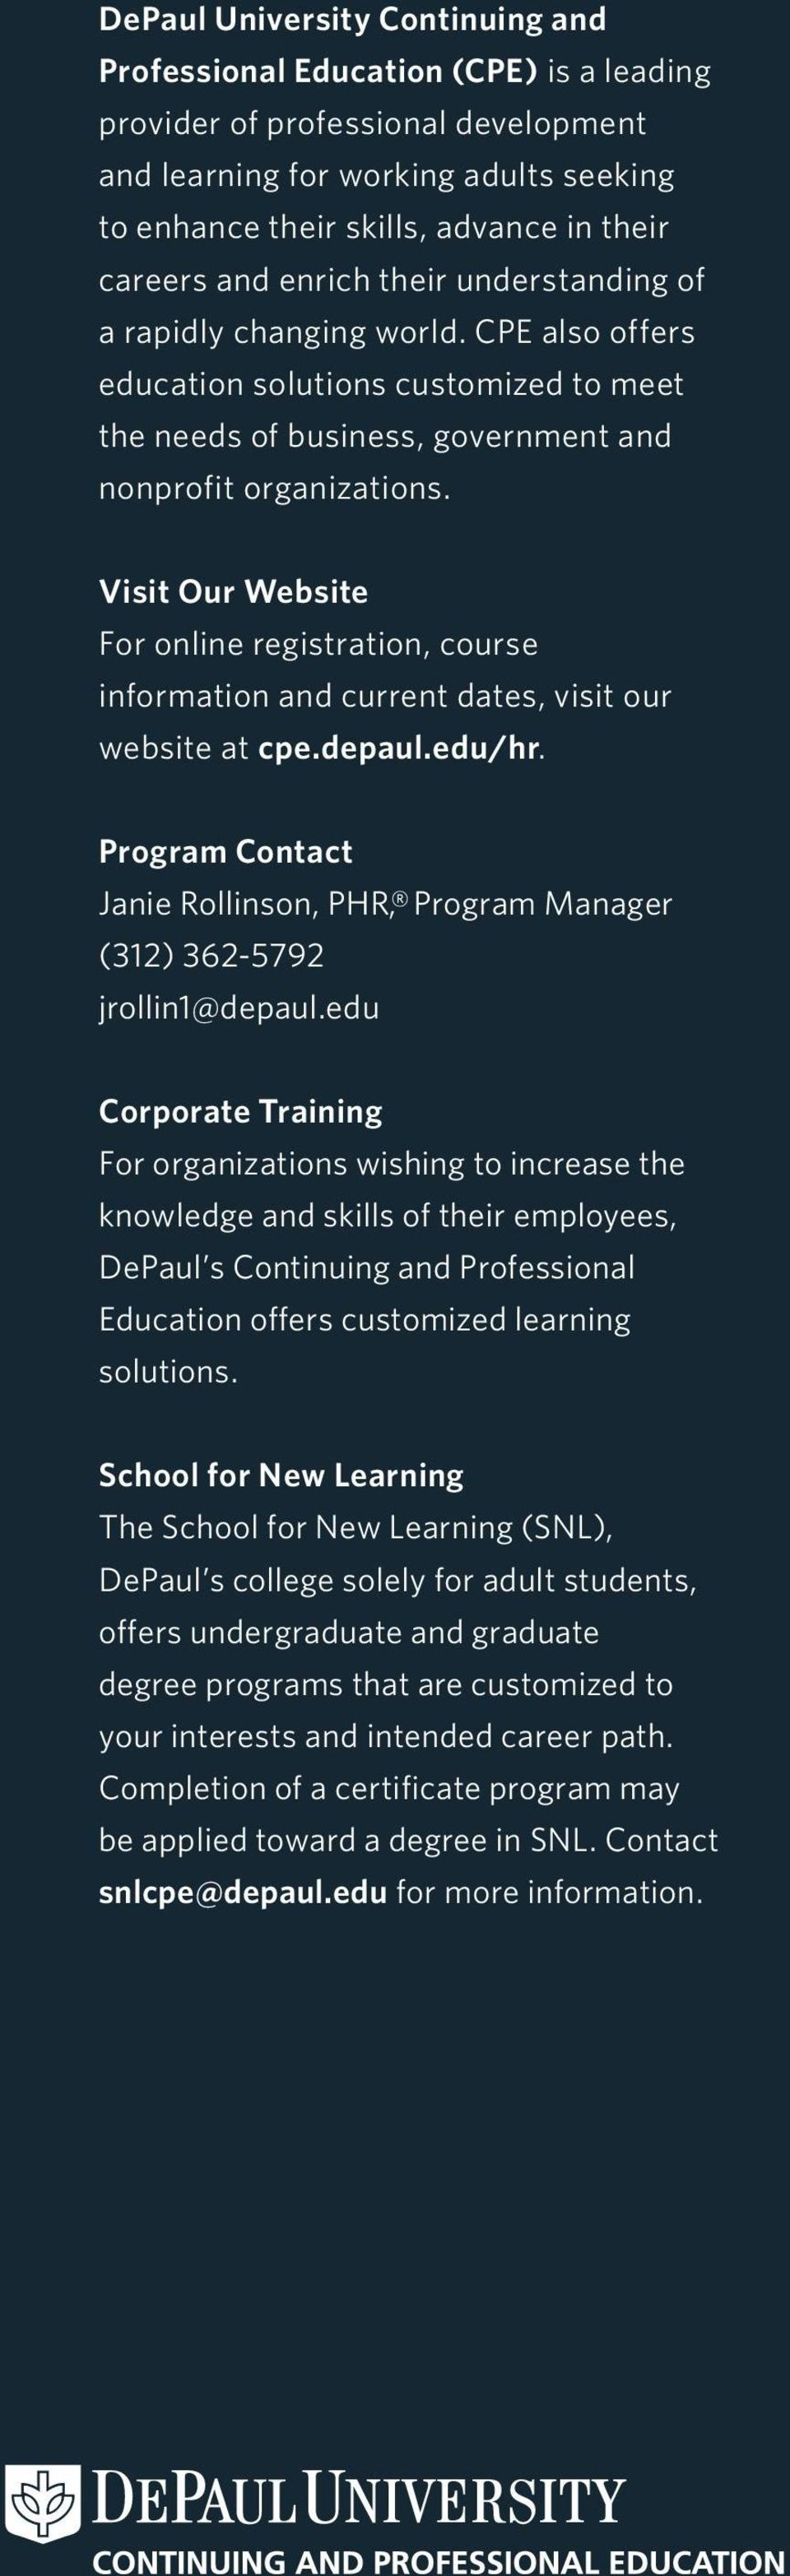 Visit Our Website For online registration, course information and current dates, visit our website at cpe.depaul.edu/hr.